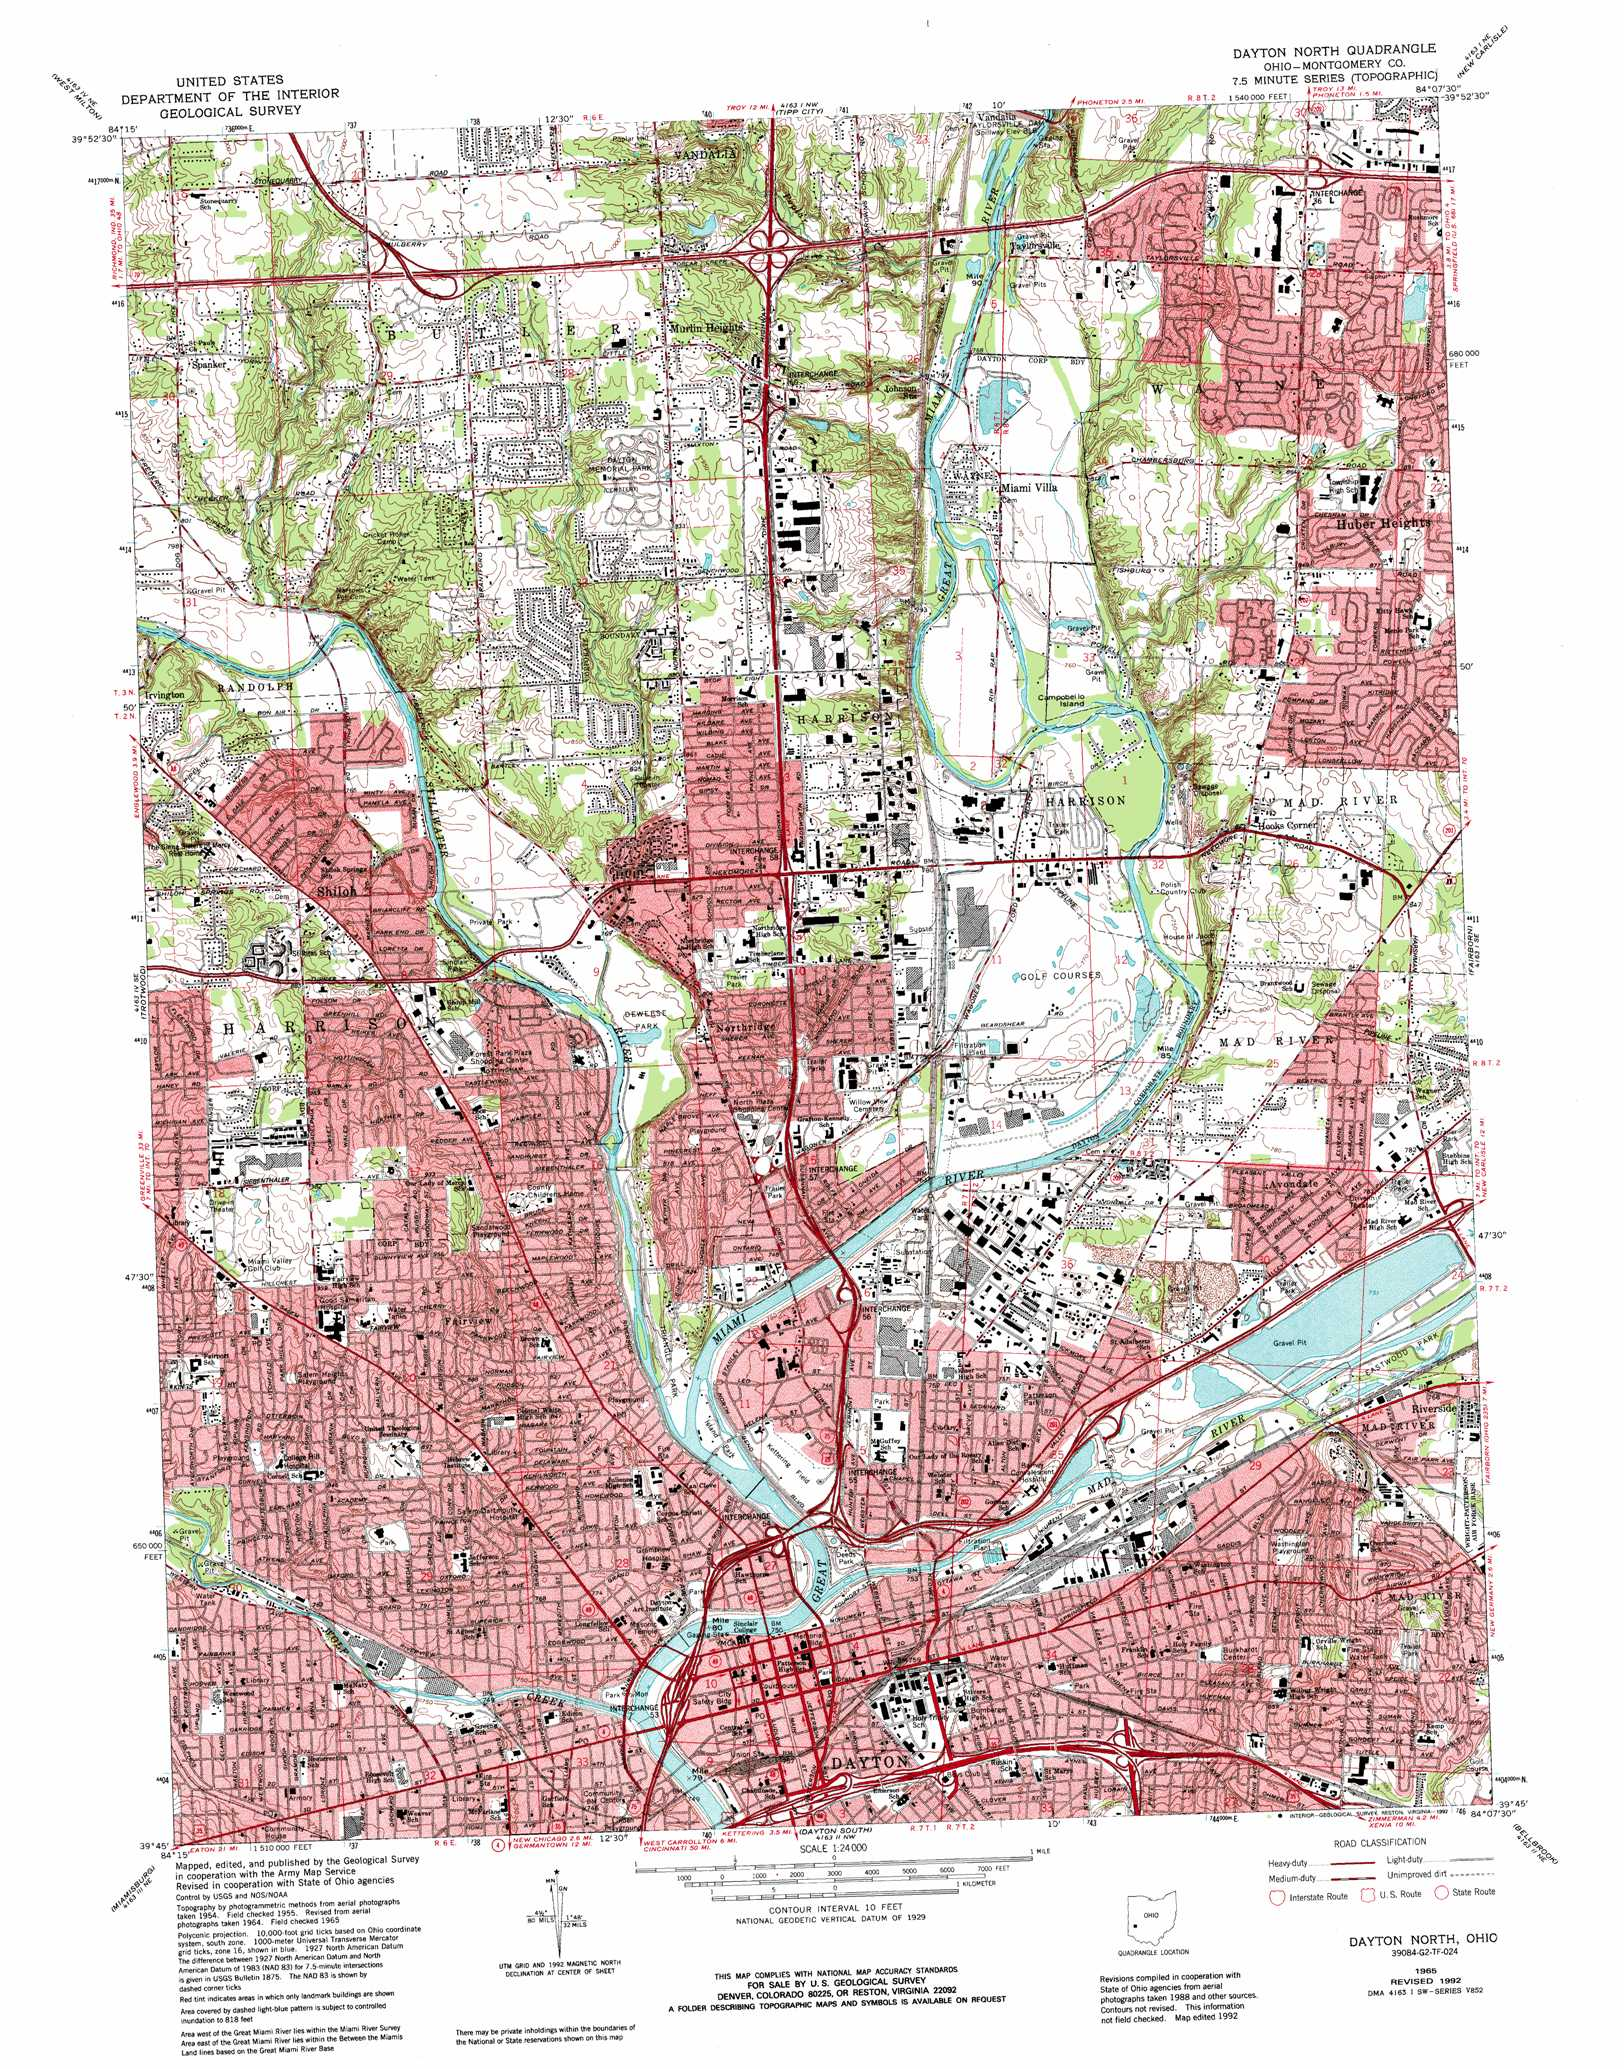 Dayton North topographic map OH USGS Topo Quad 39084g2